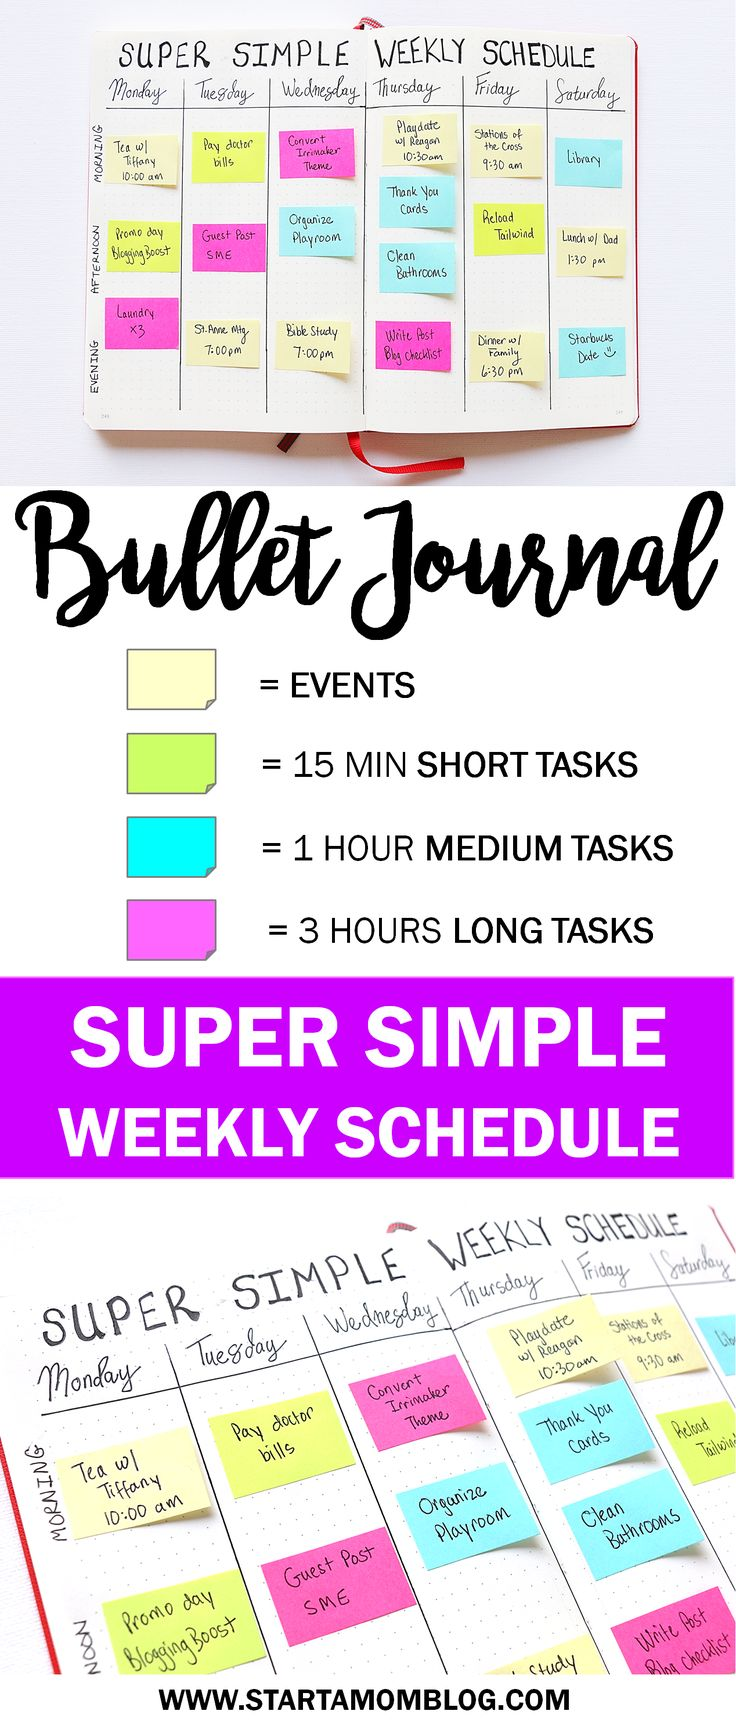 Super simple weekly layout for your bullet journal! This can be reused over and over! Easy, quick and simple way to schedule your week in your bullet journal! www.startamomblog.com